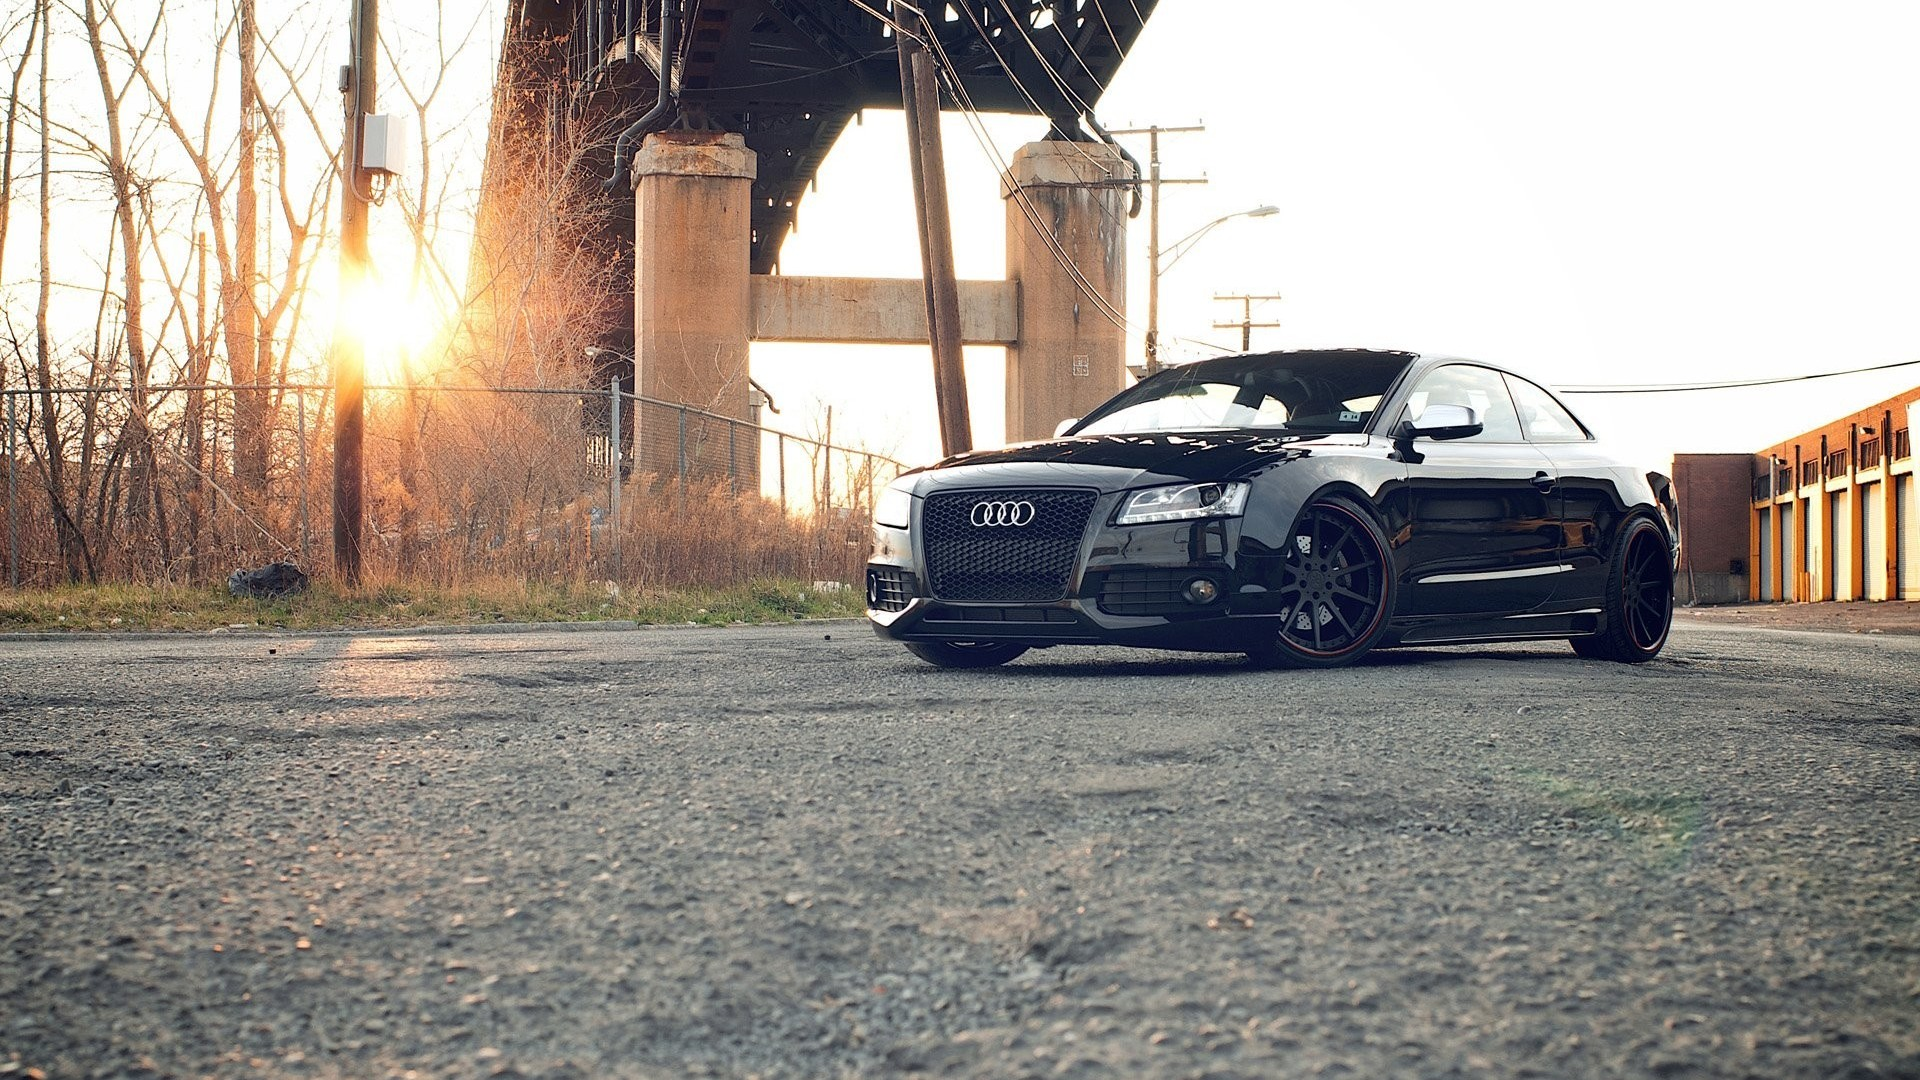 Wallpaperwiki Audi A5 Background Free Download Pic Wpc004658